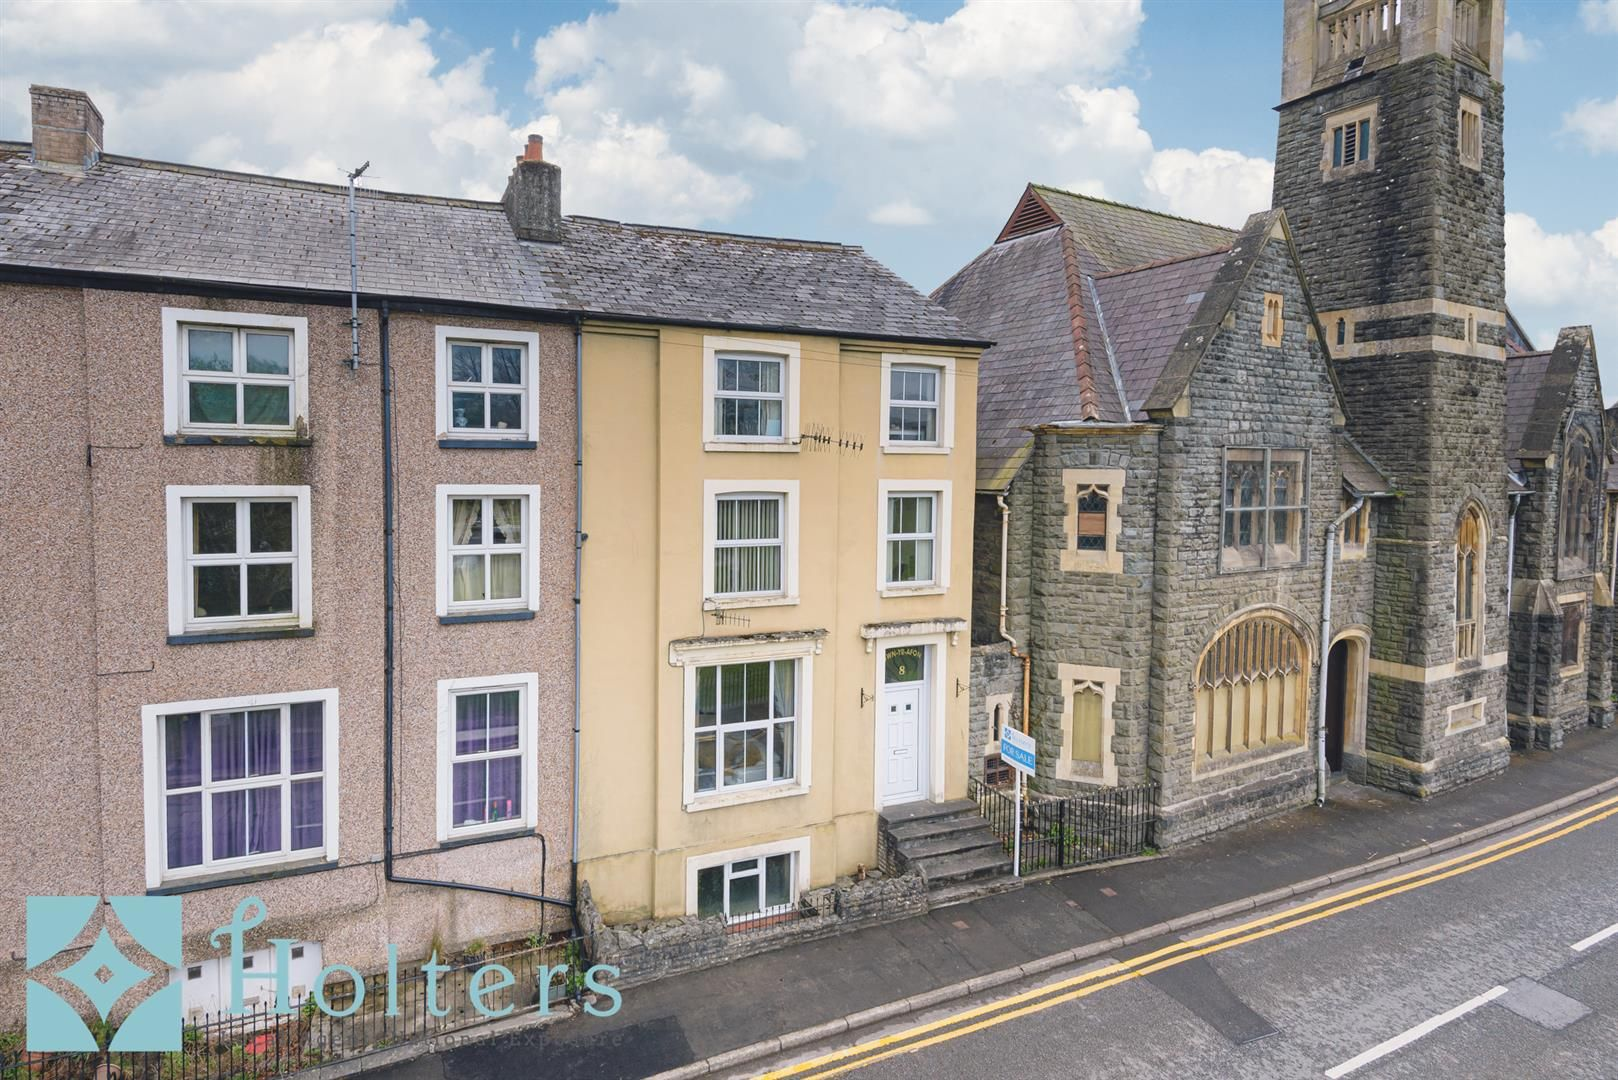 Property photo 1 of 29. 8 The Strand, Builth Wells-22.Jpg